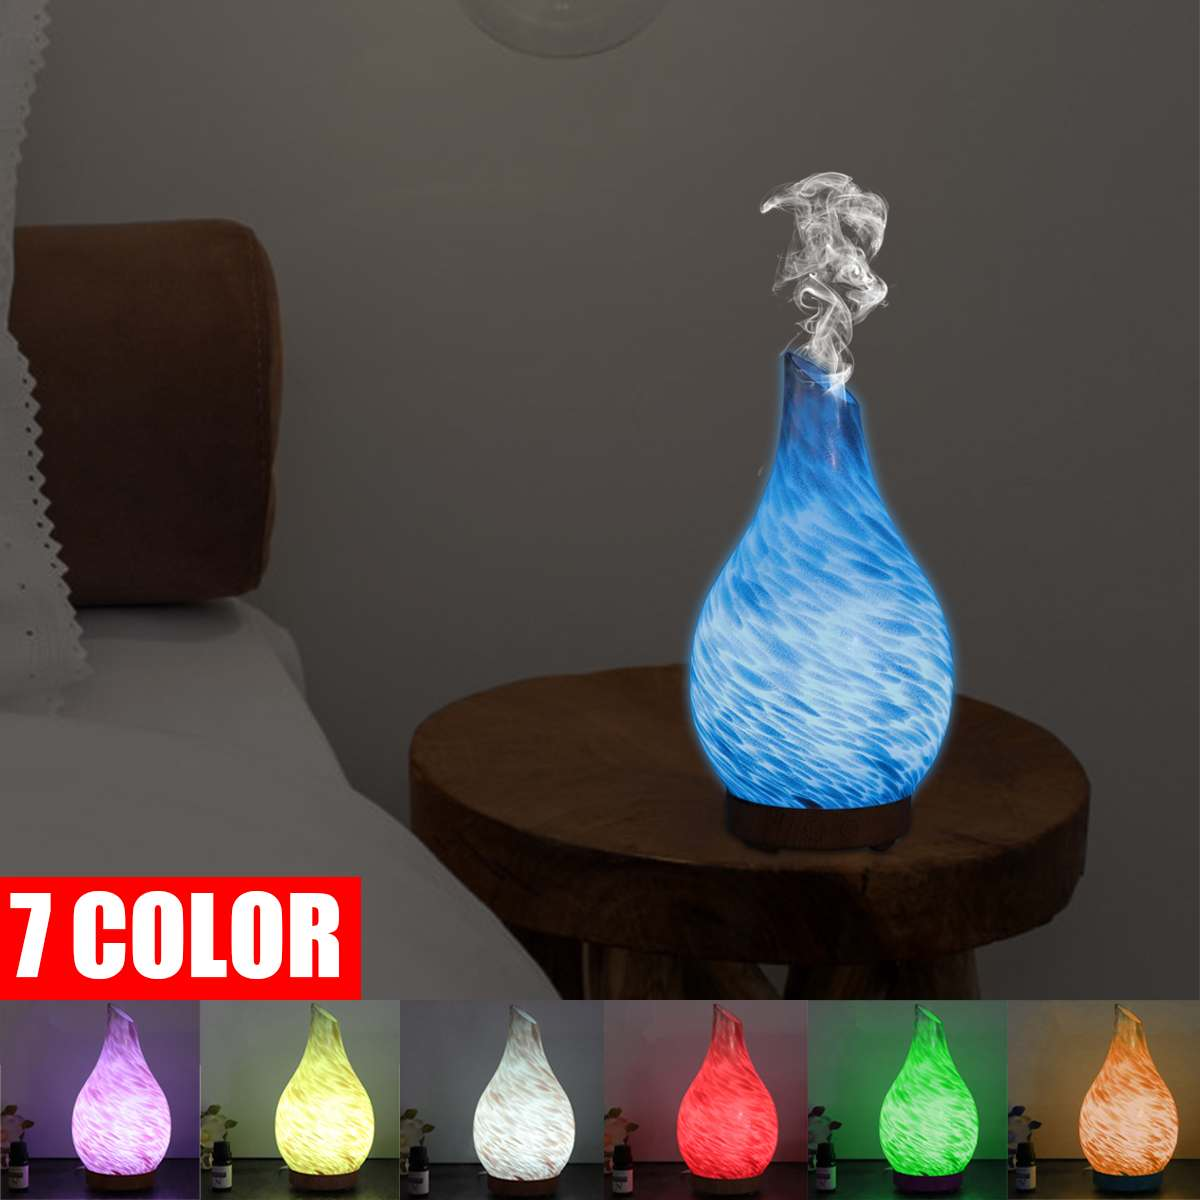 12W LED Light Air Humidifier Essential Oil Diffuser Purifier Led Night Light 7 Color Change Aromatherapy Mist Humidifier Office12W LED Light Air Humidifier Essential Oil Diffuser Purifier Led Night Light 7 Color Change Aromatherapy Mist Humidifier Office